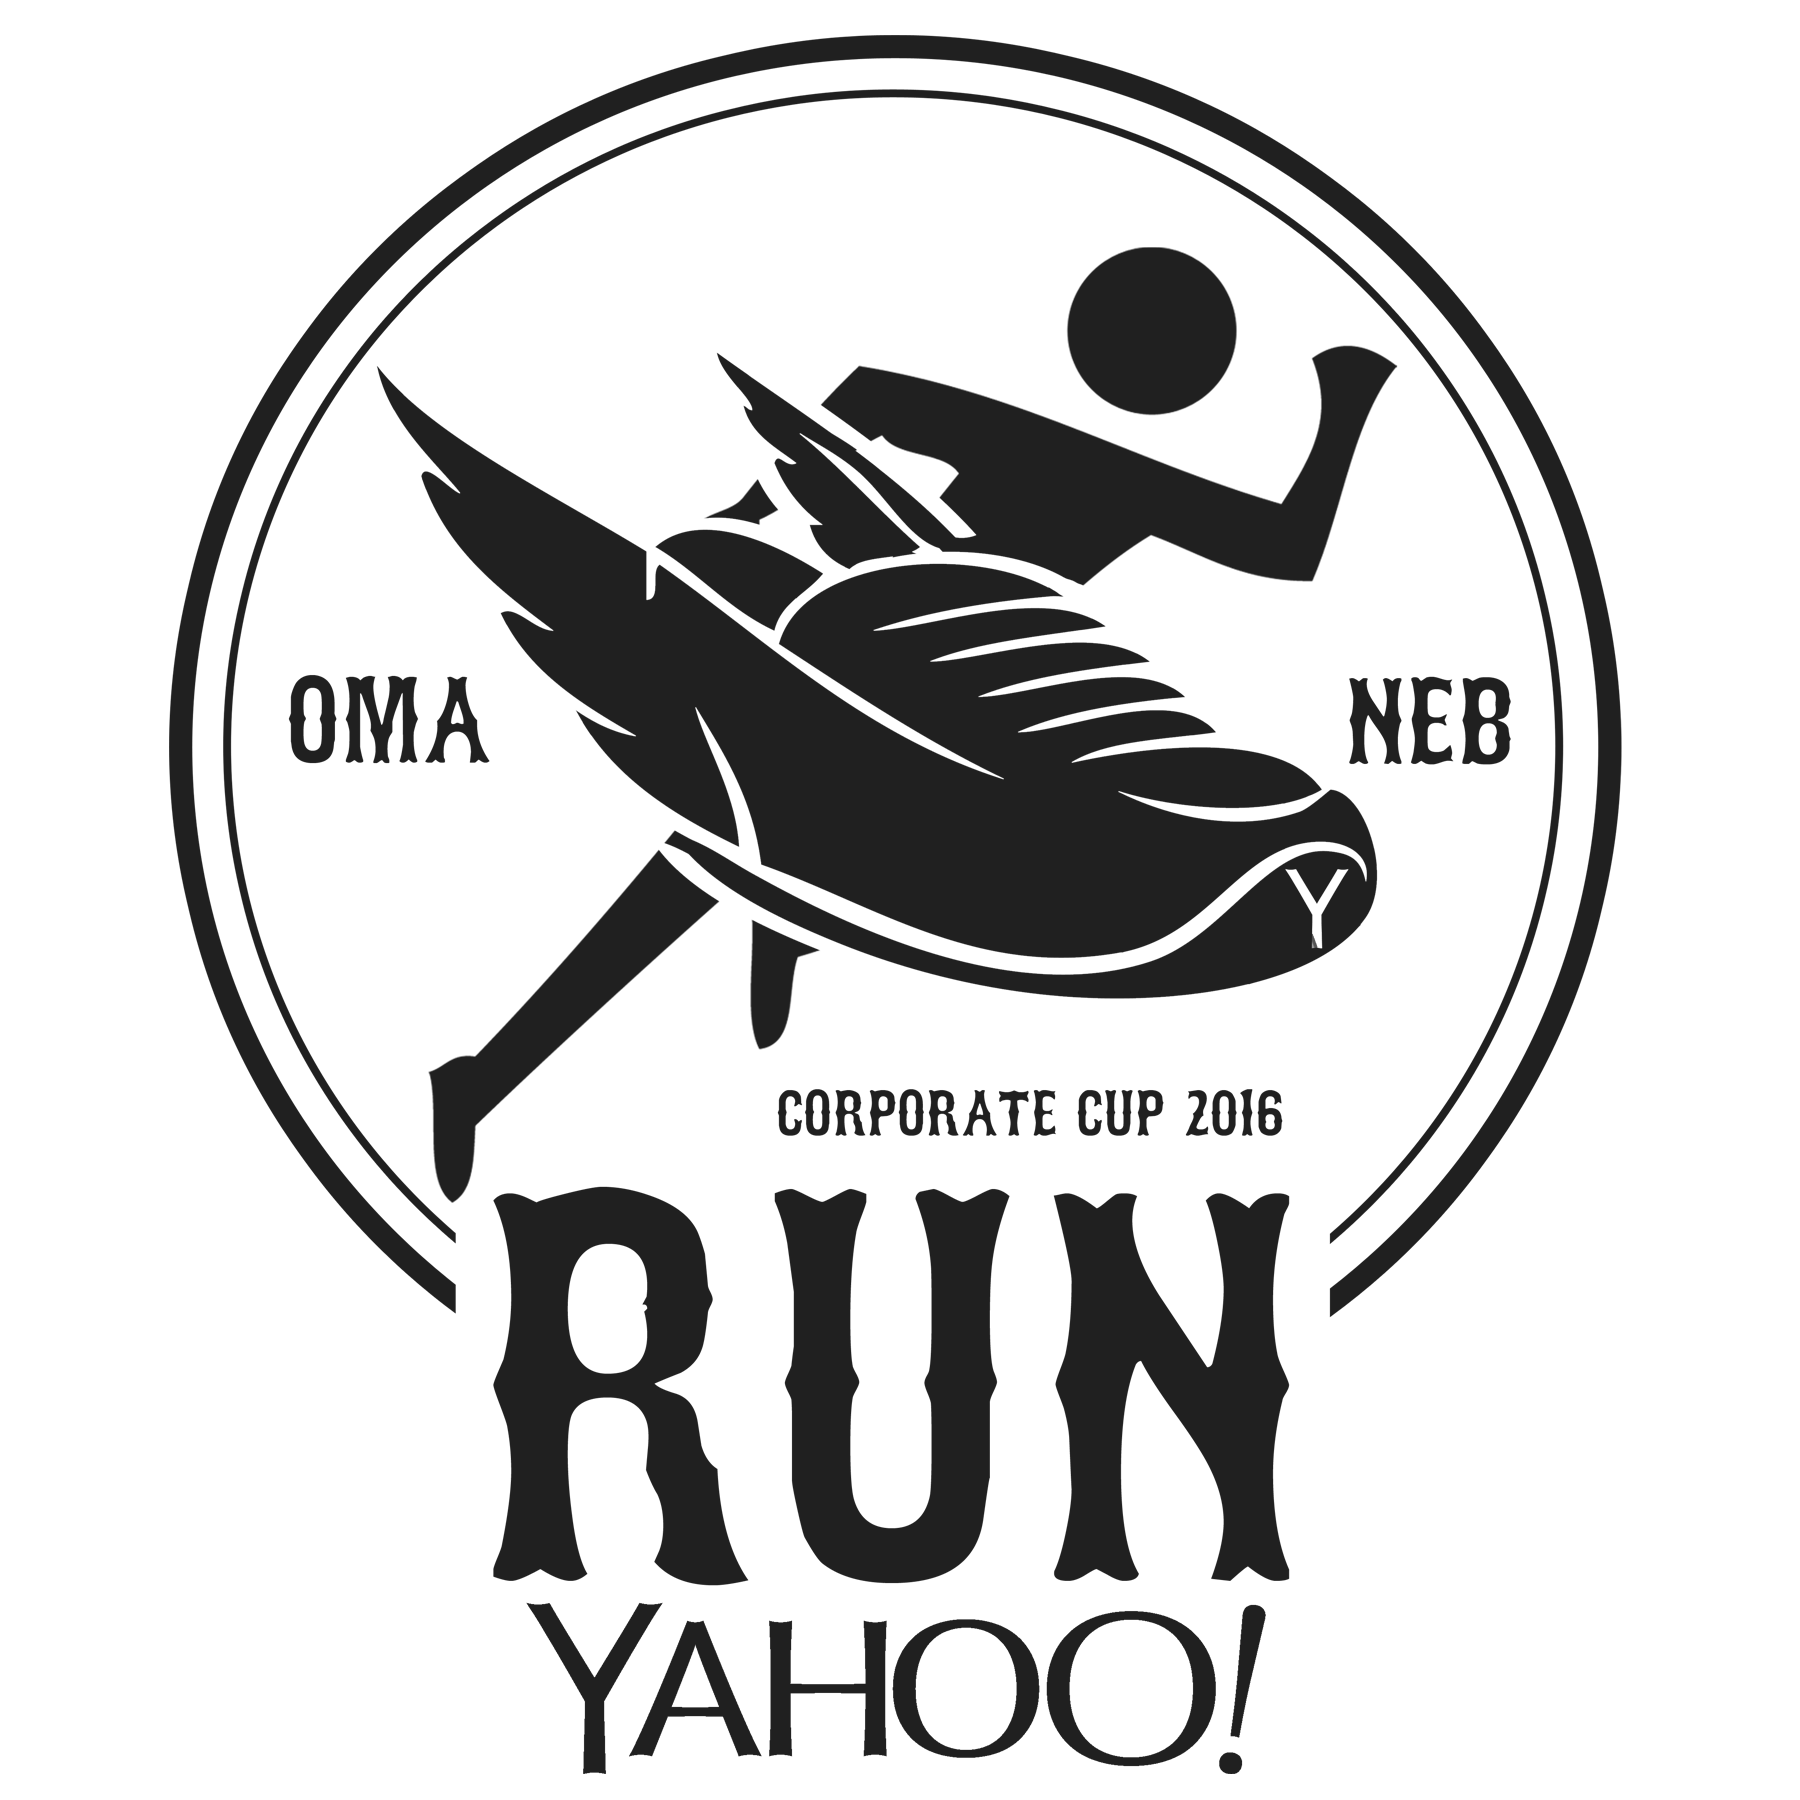 YAHOO CORPORATE CUP 2016 DESIGN